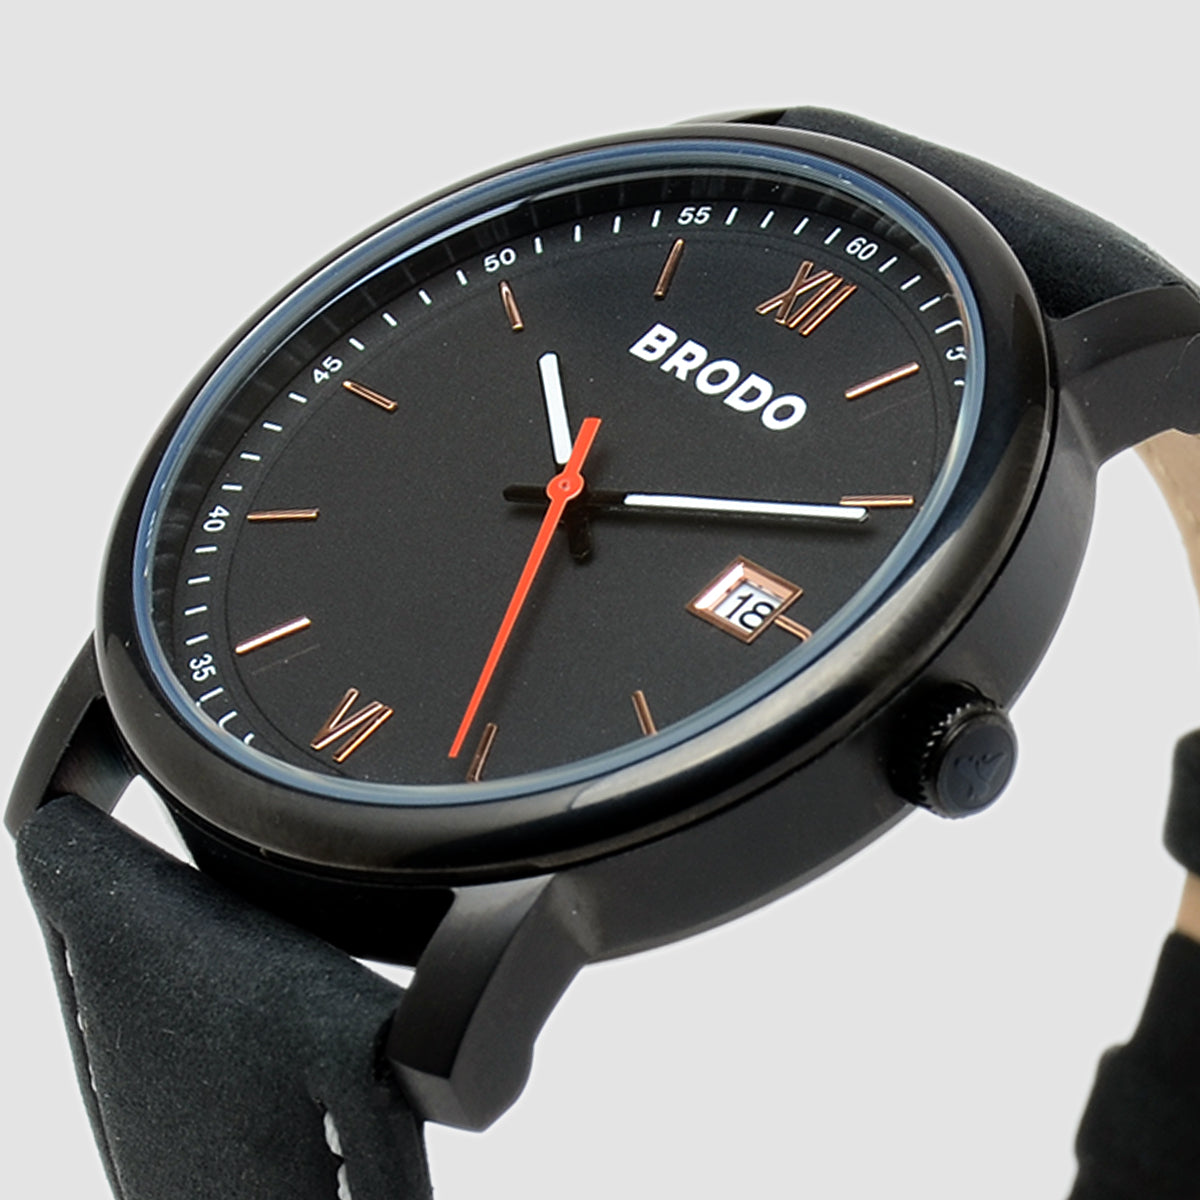 Brodo Watch Collection